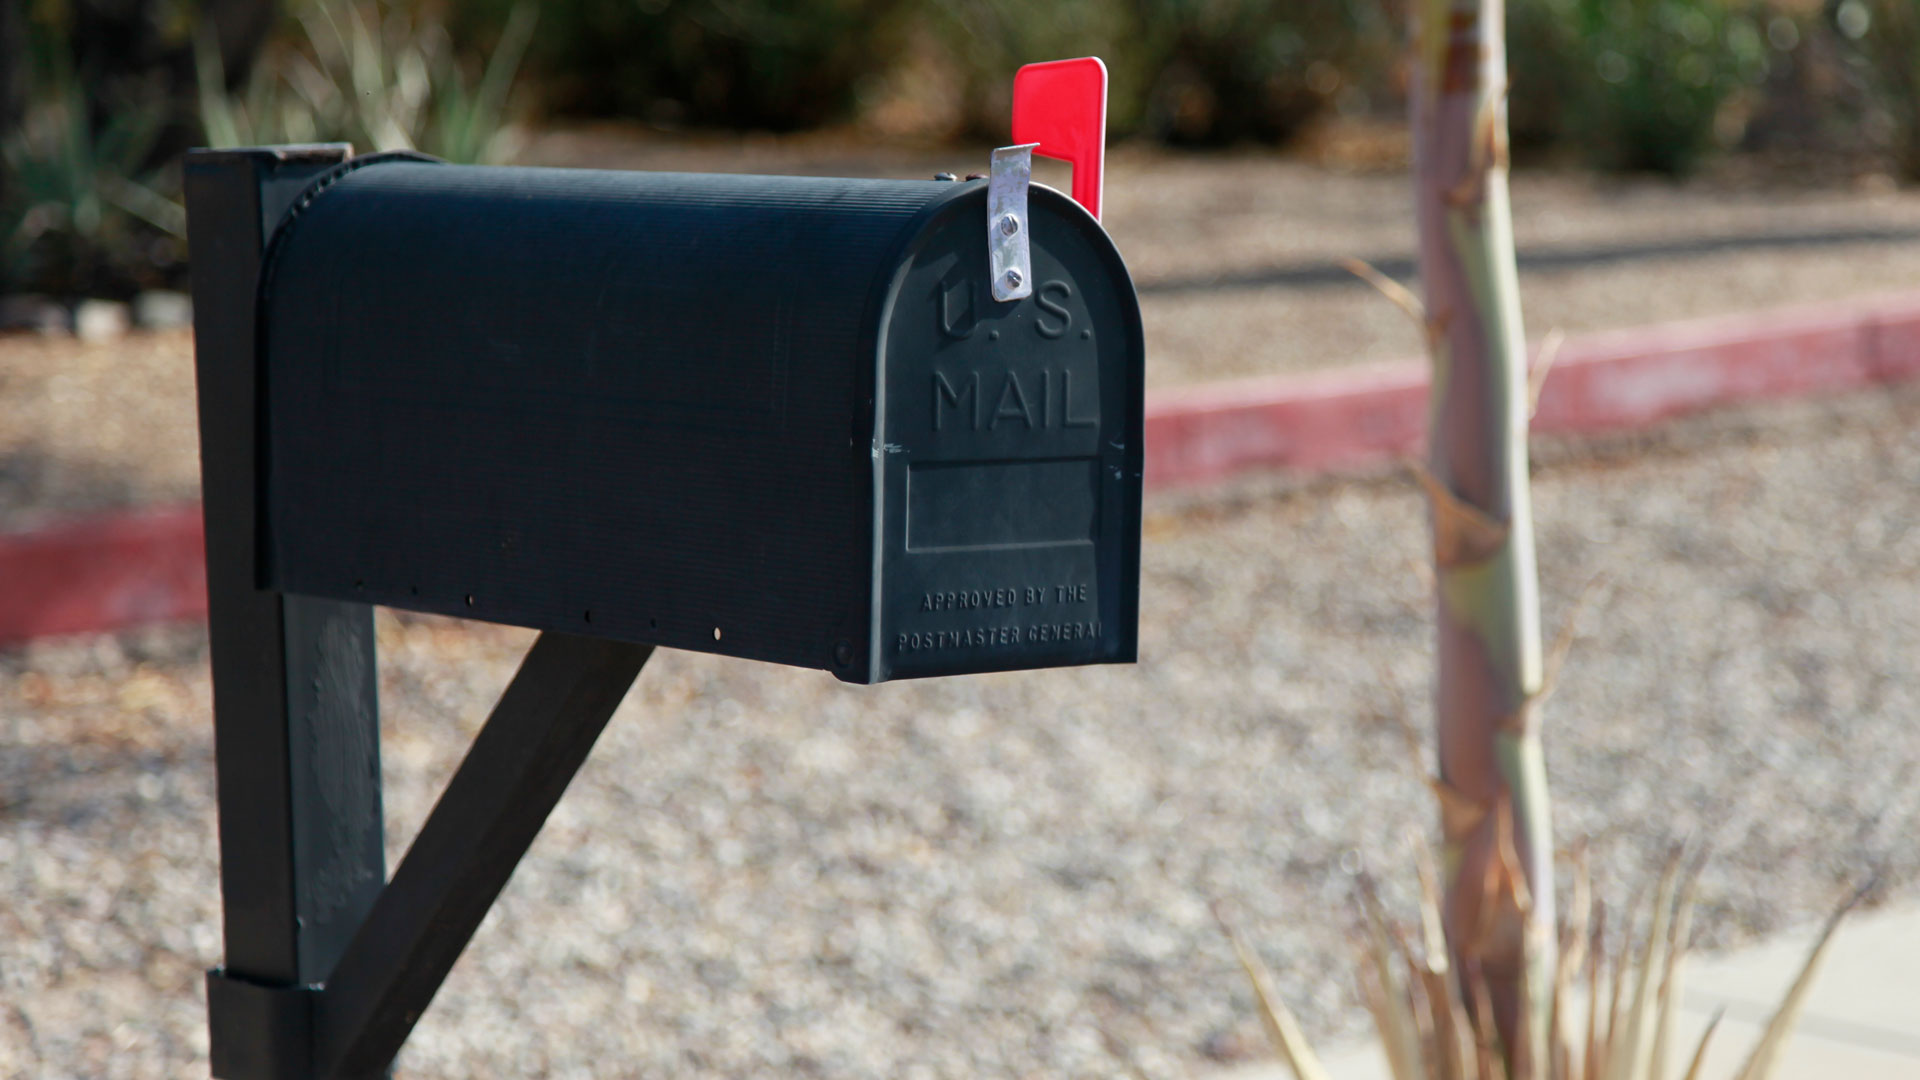 Even stealing mail is a federal crime, some thieves target mailboxes searching for checks and other valuables.